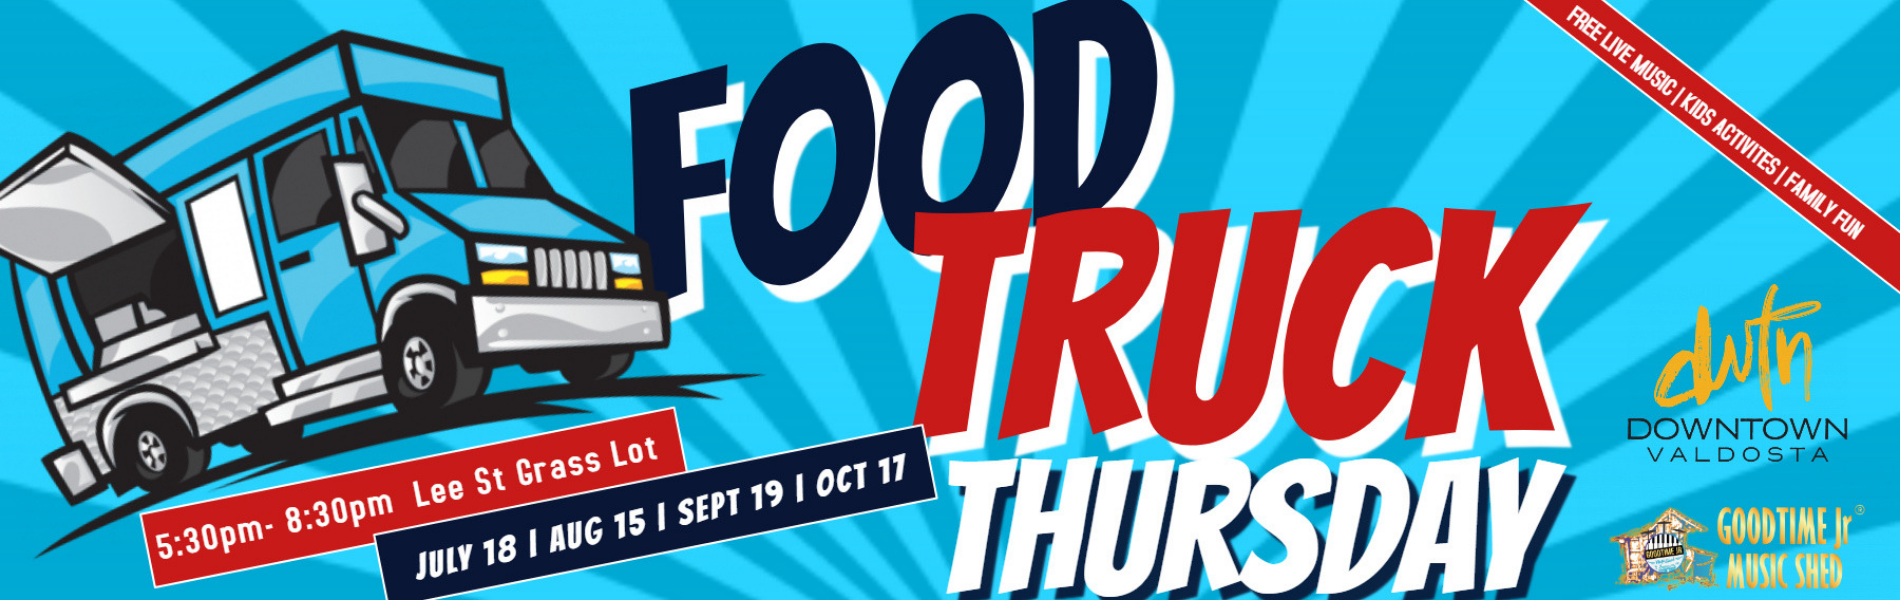 Food Truck Thursdays in Downtown Valdosta. Third Thursday of every month from 5:30pm until 8:30pm. A free concert by Goodtime Jr